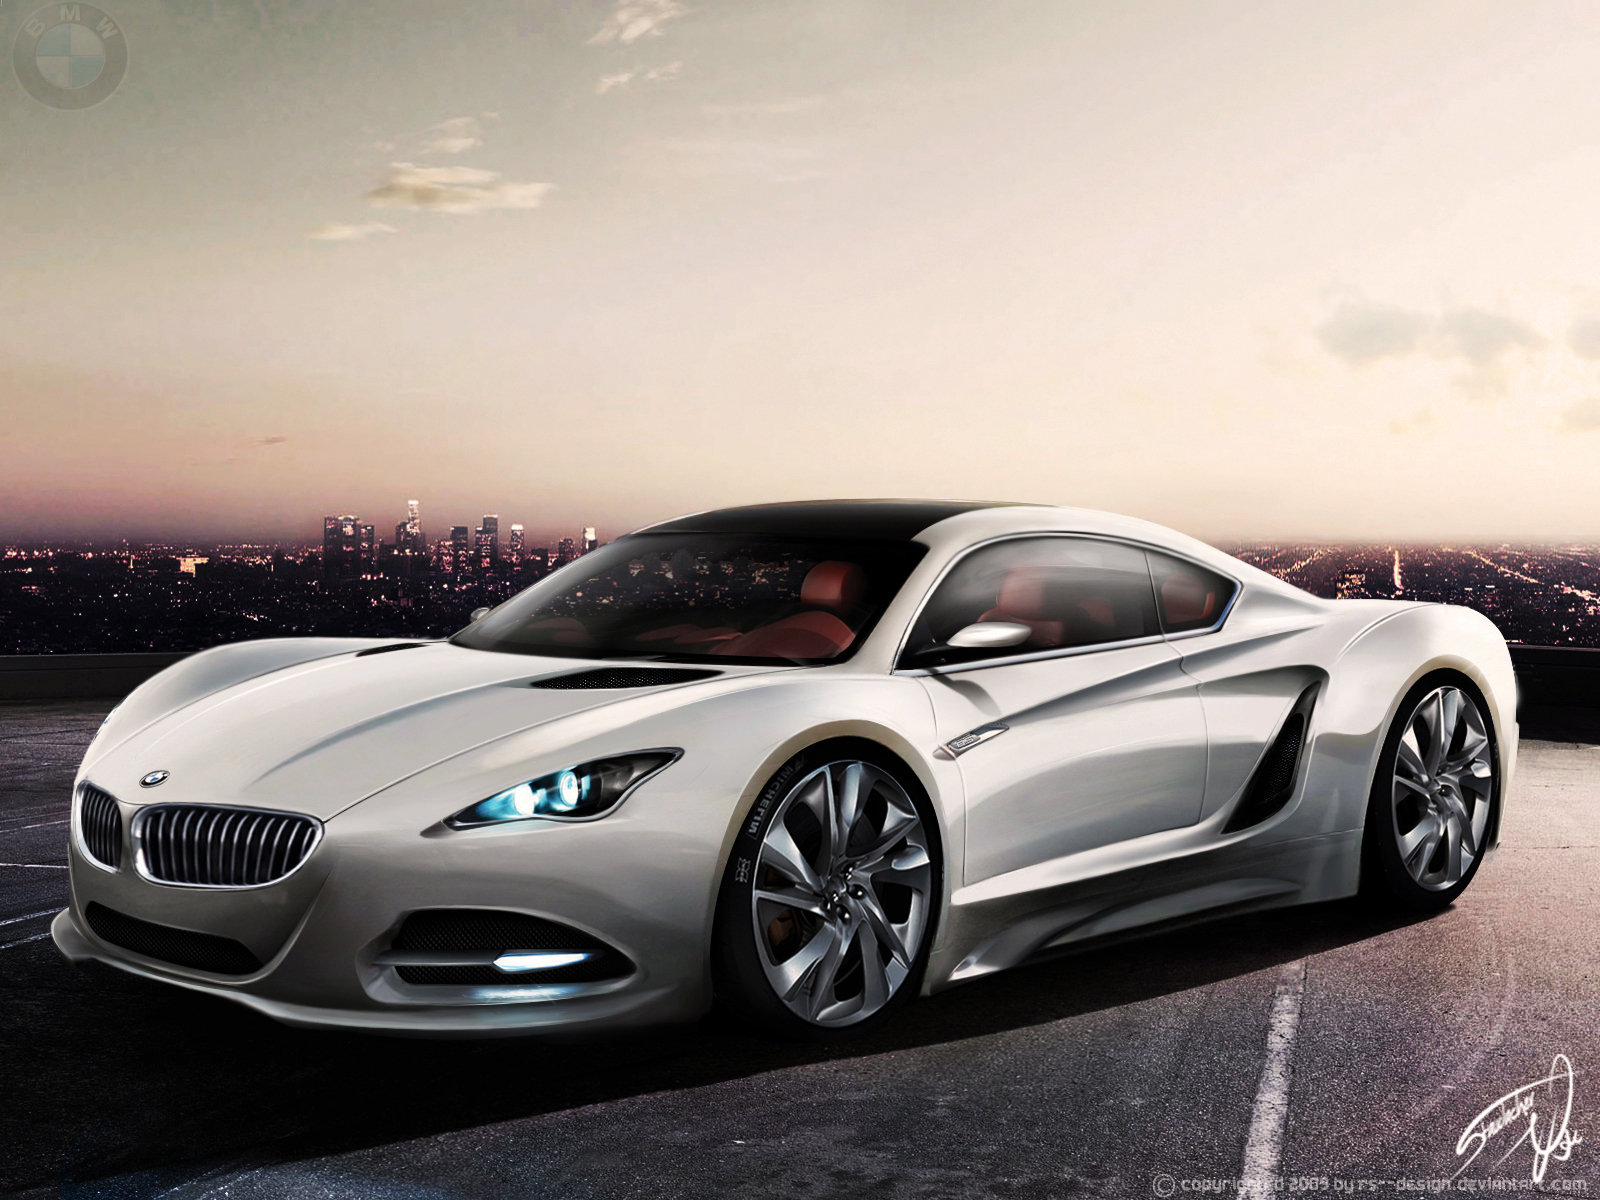 BMW cars vehicles concept HD Wallpaper